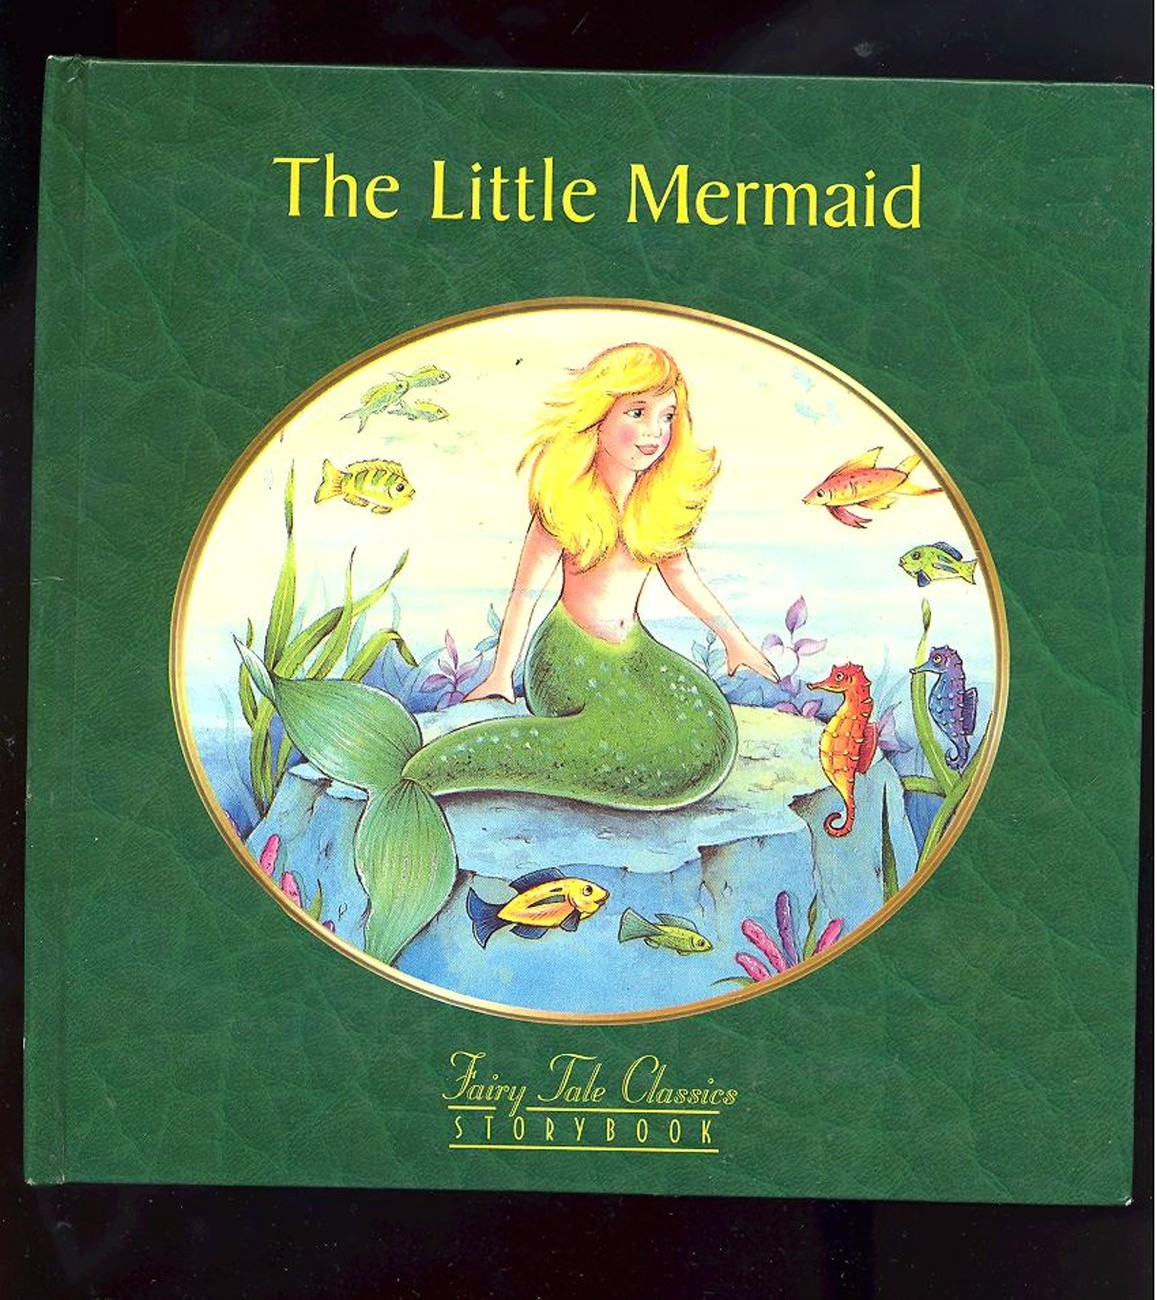 Primary image for The Little Mermaid HB (1998)